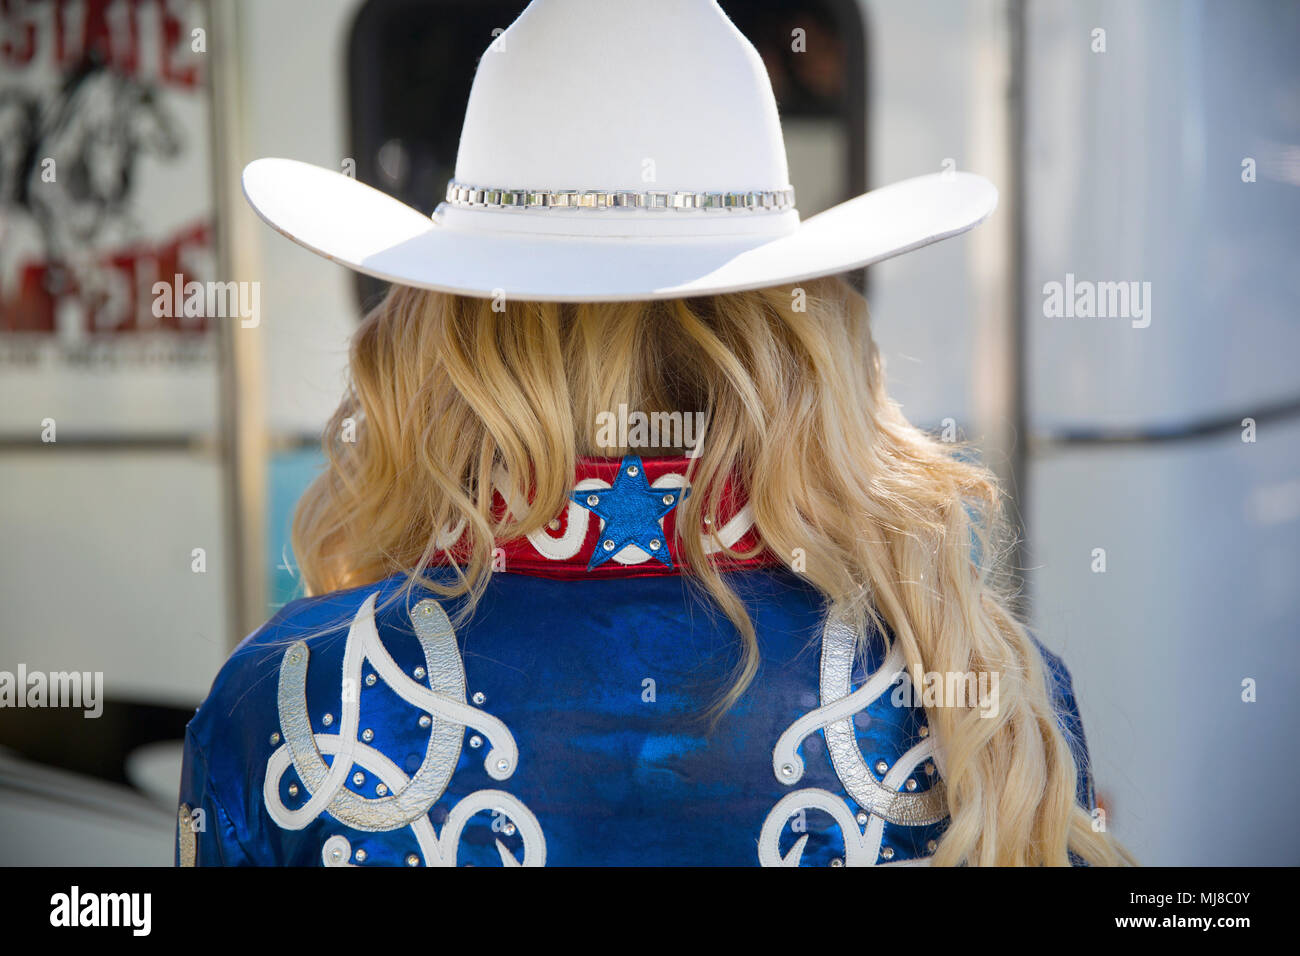 4e7f387d74eed Rear view of woman with long blond hair wearing white Stetson hat and shiny  blue jacket